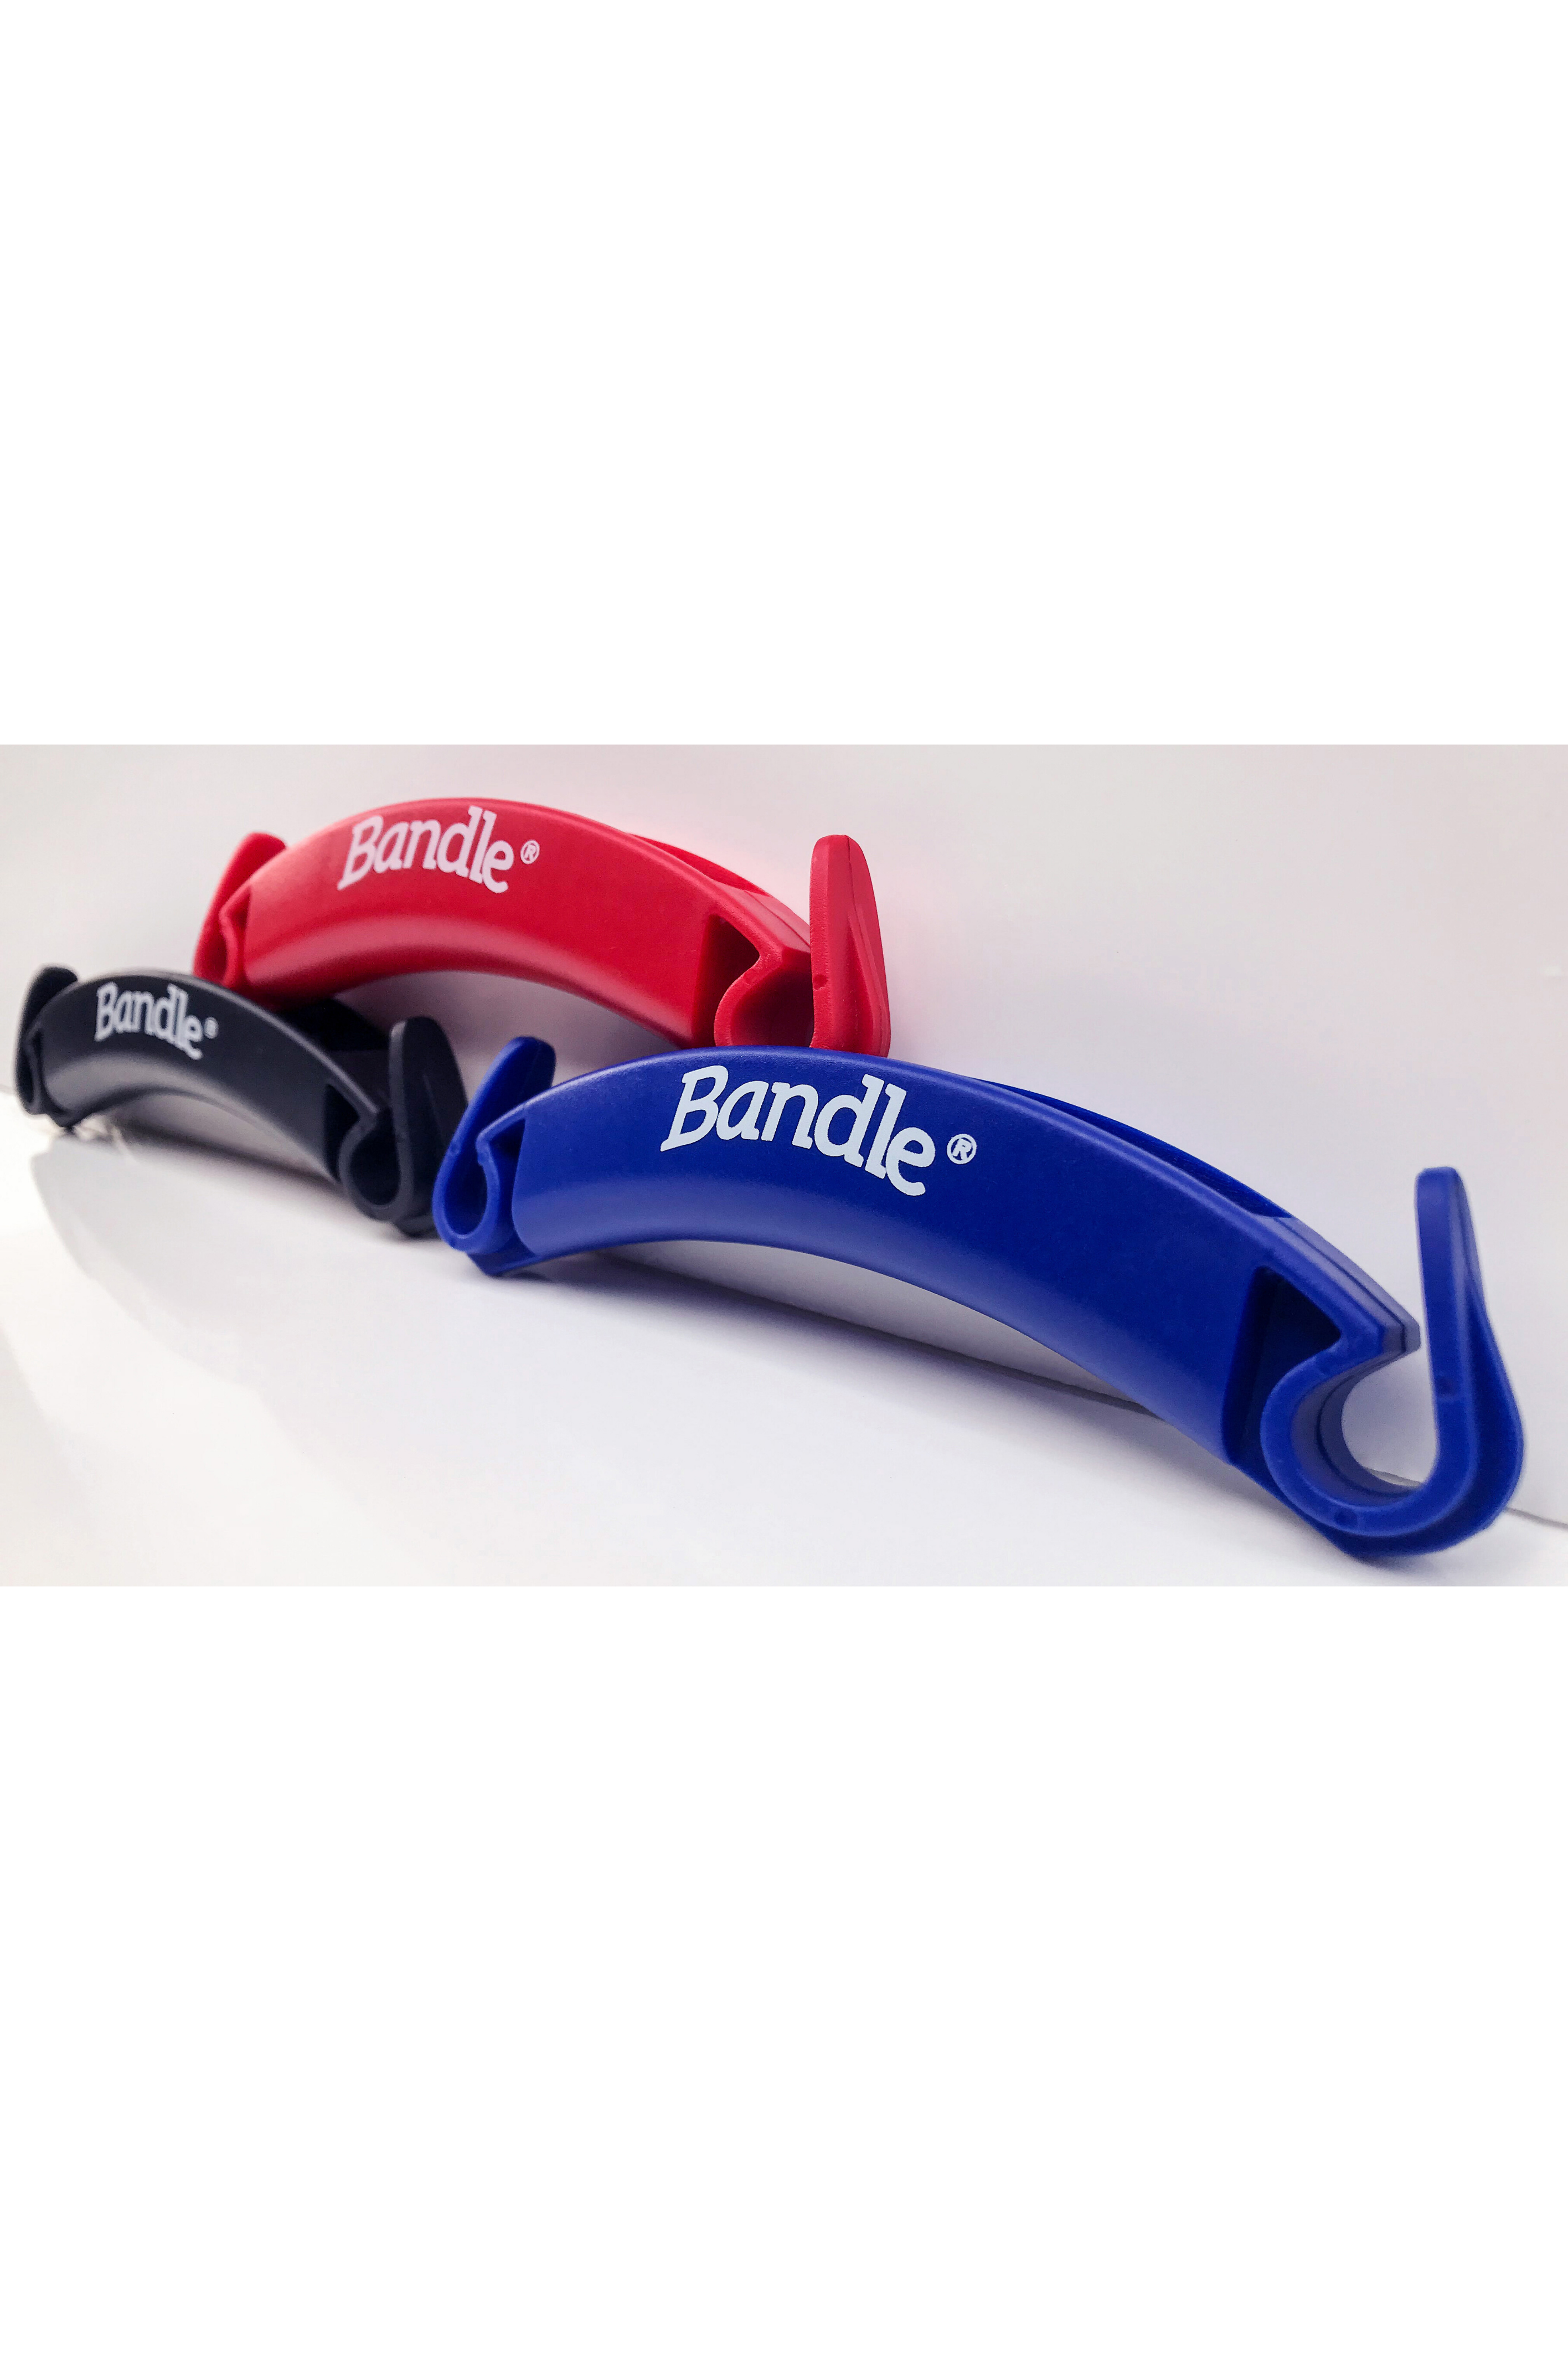 Bandle Carrier handle